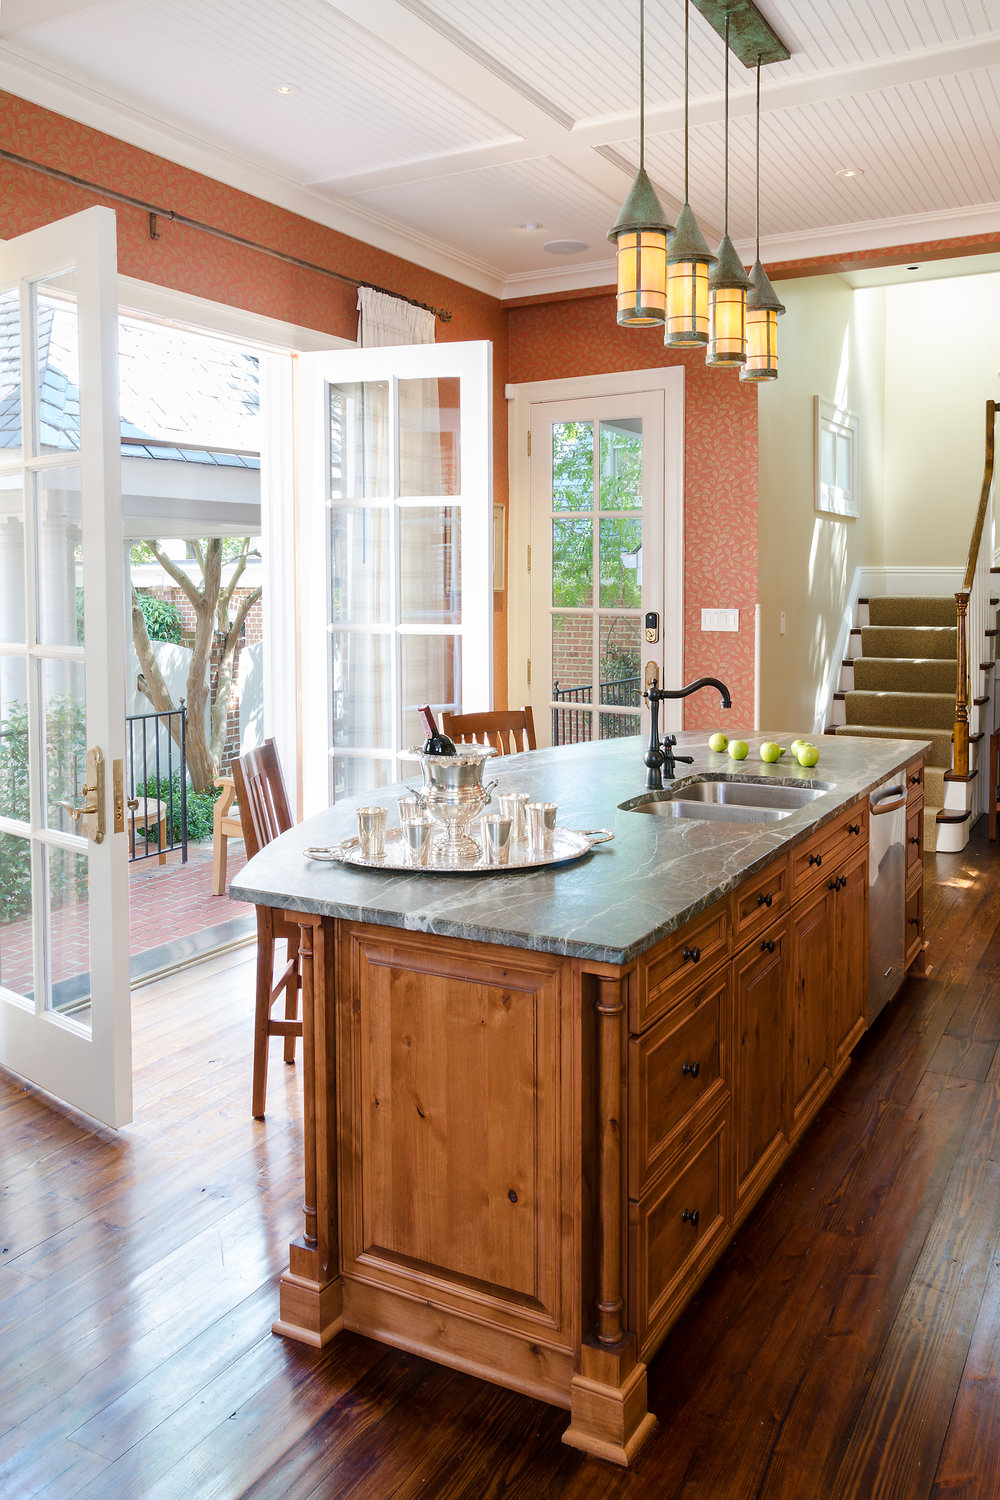 Custom-Kitchens-Wheat-Kitchen-52913-Island-French-Doors-1.jpg